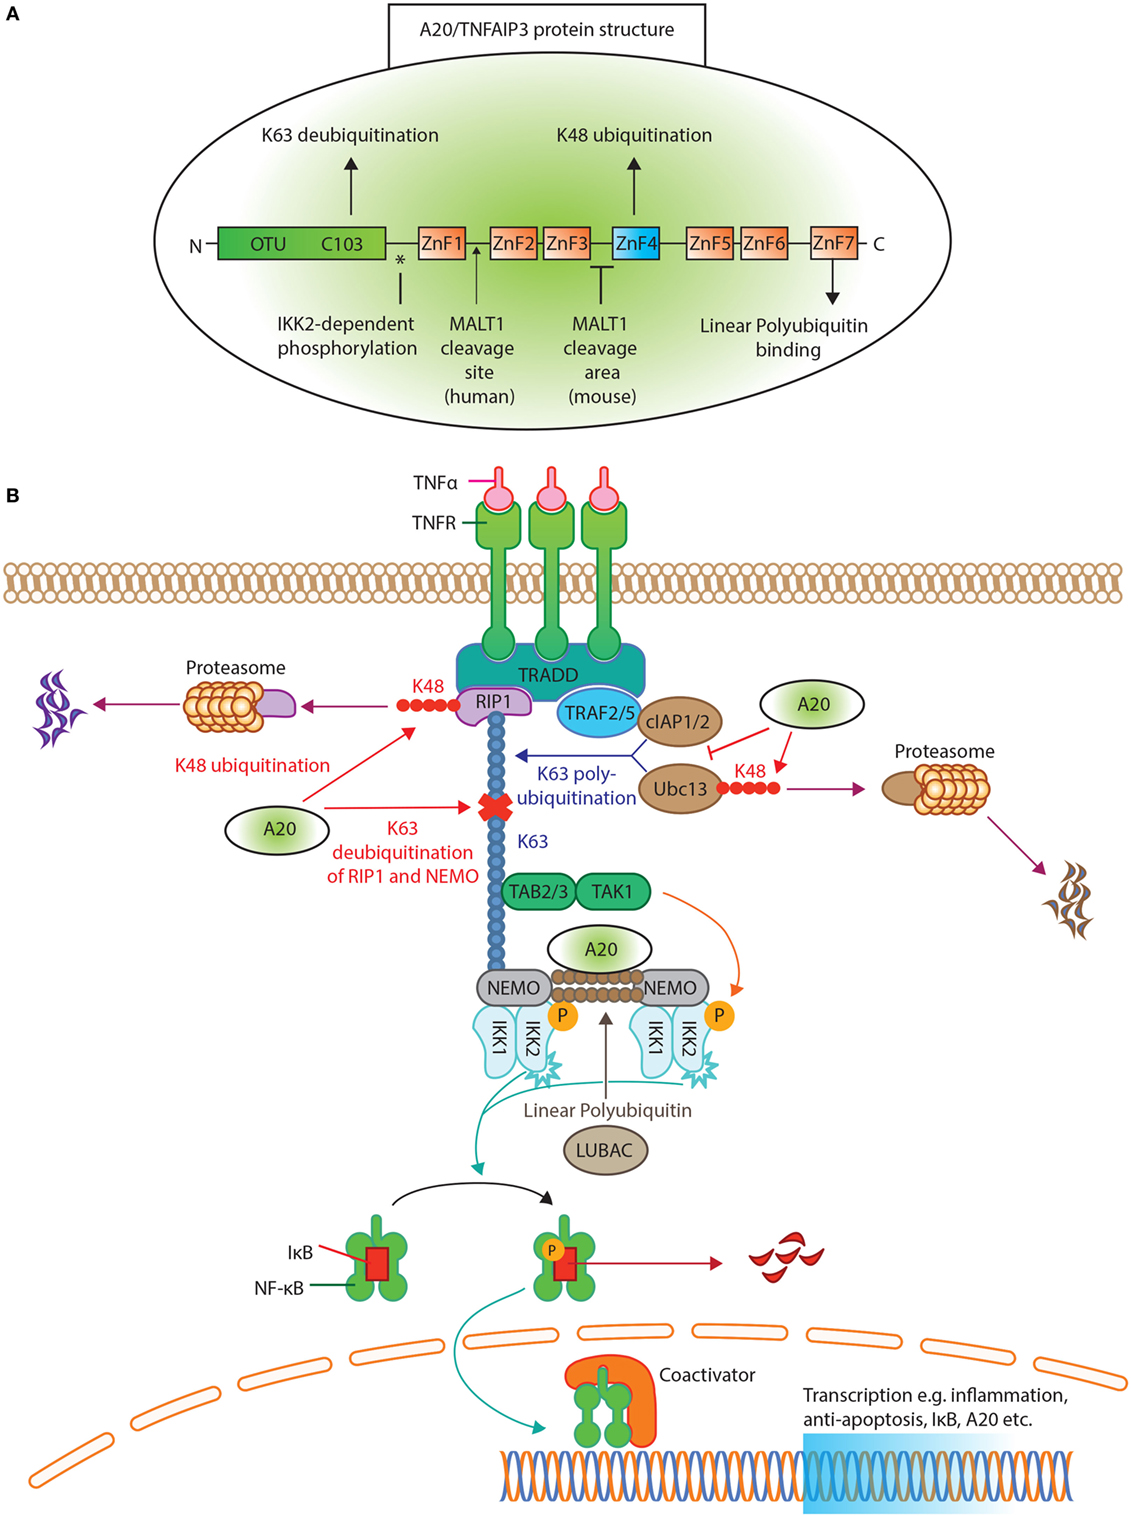 Frontiers | A20/Tumor Necrosis...